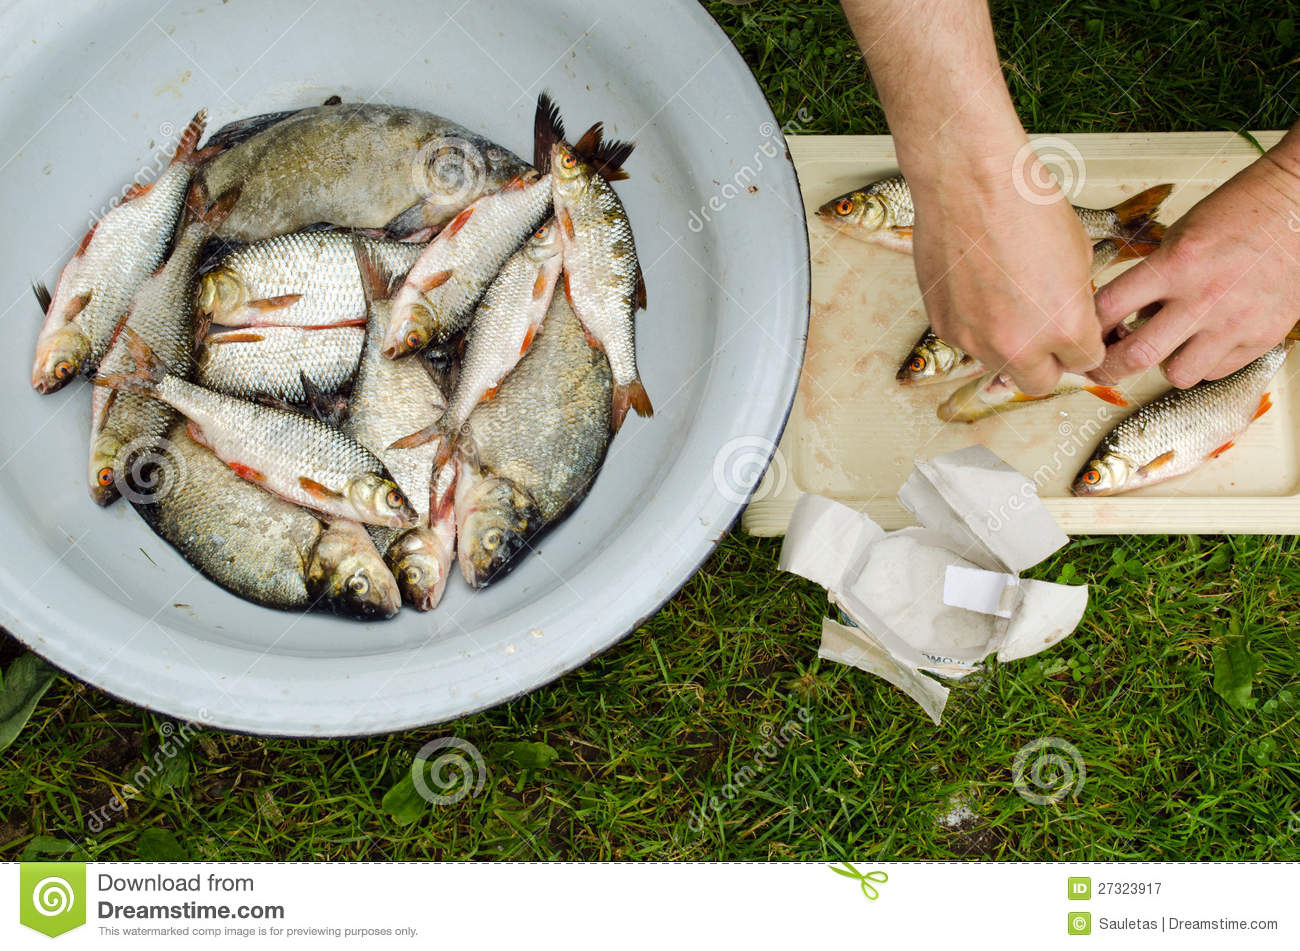 Human hands salt fish for food bream roach stock image for Saltwater fish food